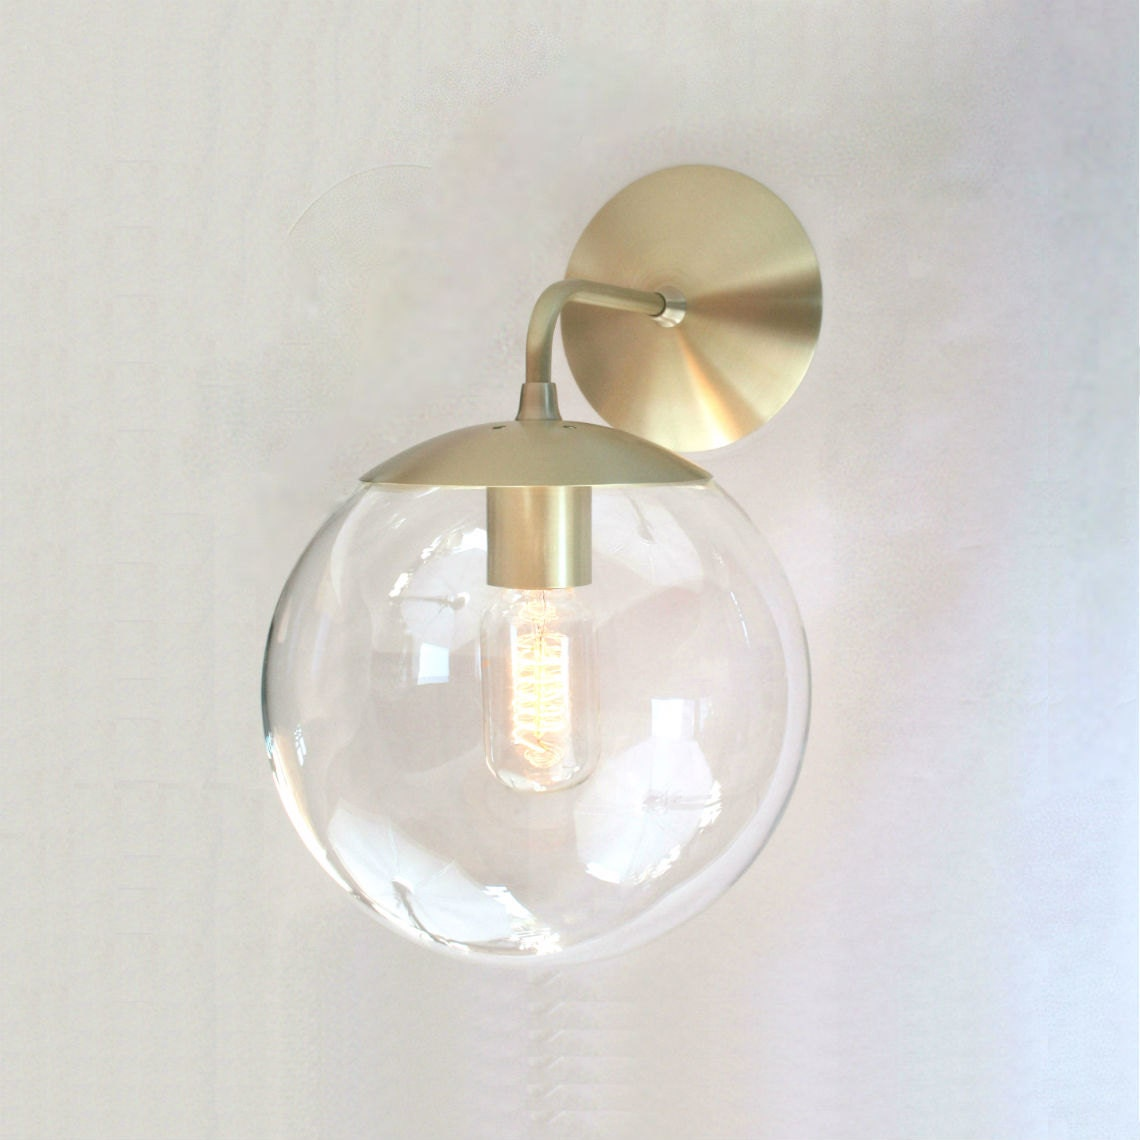 Wall Sconces Mid Century : Mid Century Modern Wall Sconce Light 8 Clear Glass Globe